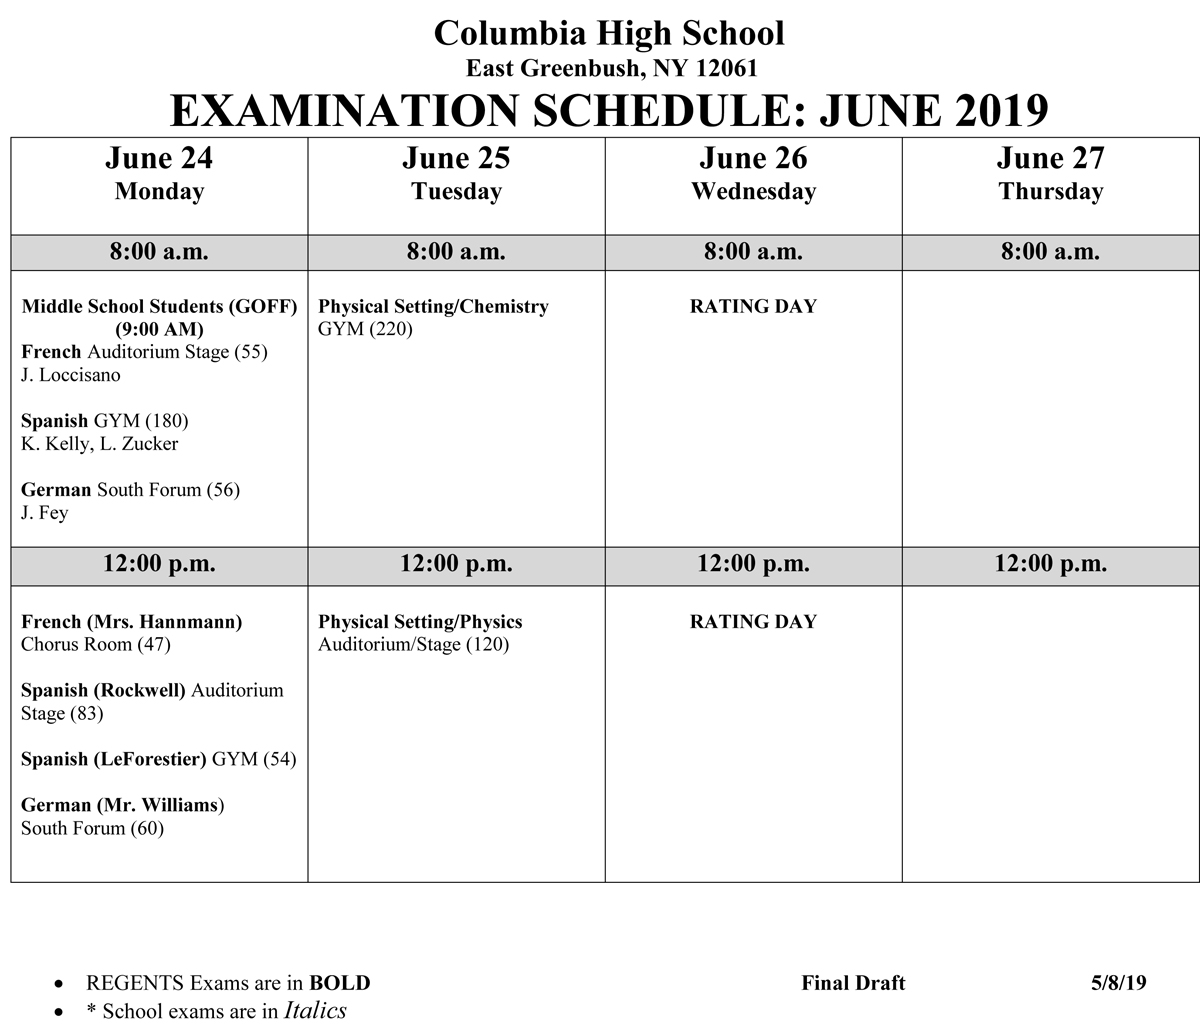 June 2019 Regents Exam Schedule page 2